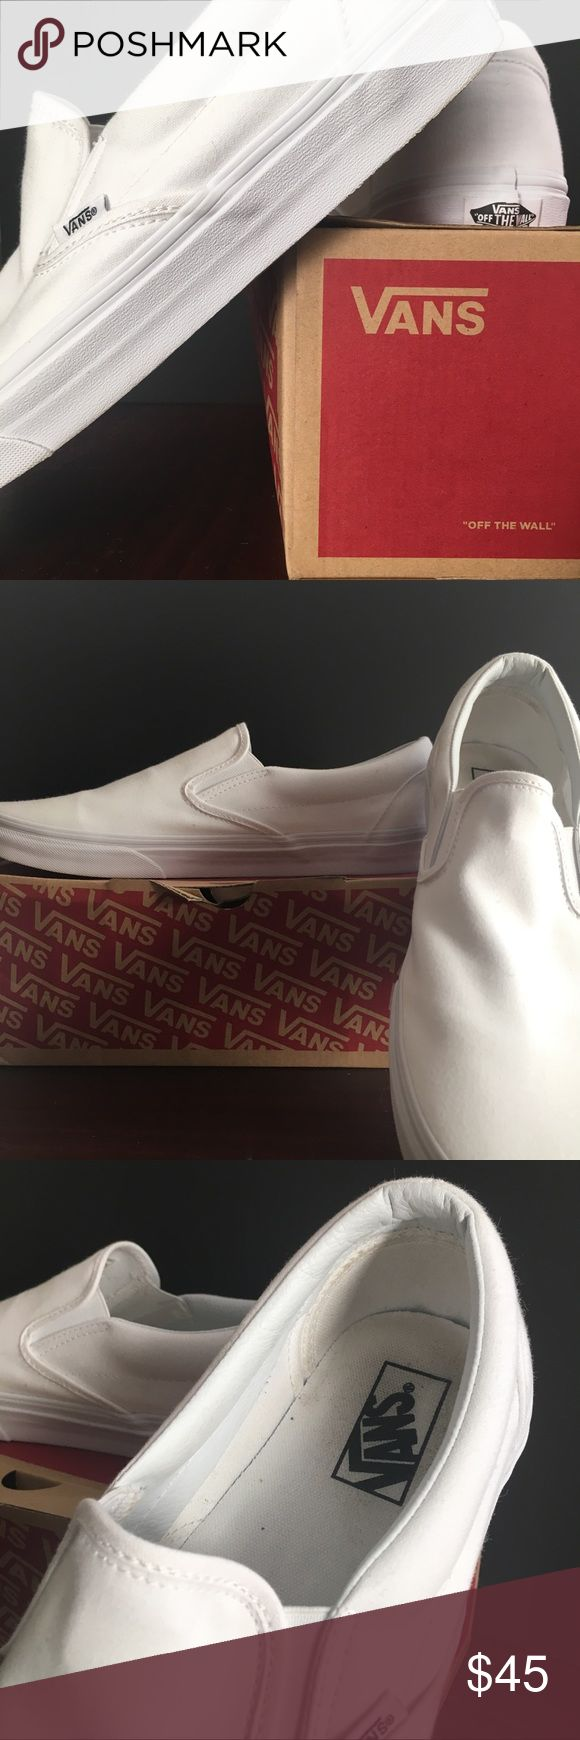 🔥All white slip on vans.🔥 A pair of all white slip on vans. Only worn once.   Very comfortable great for casual life.   No damages.  Willing to negotiate offer Vans Shoes Loafers & Slip-Ons